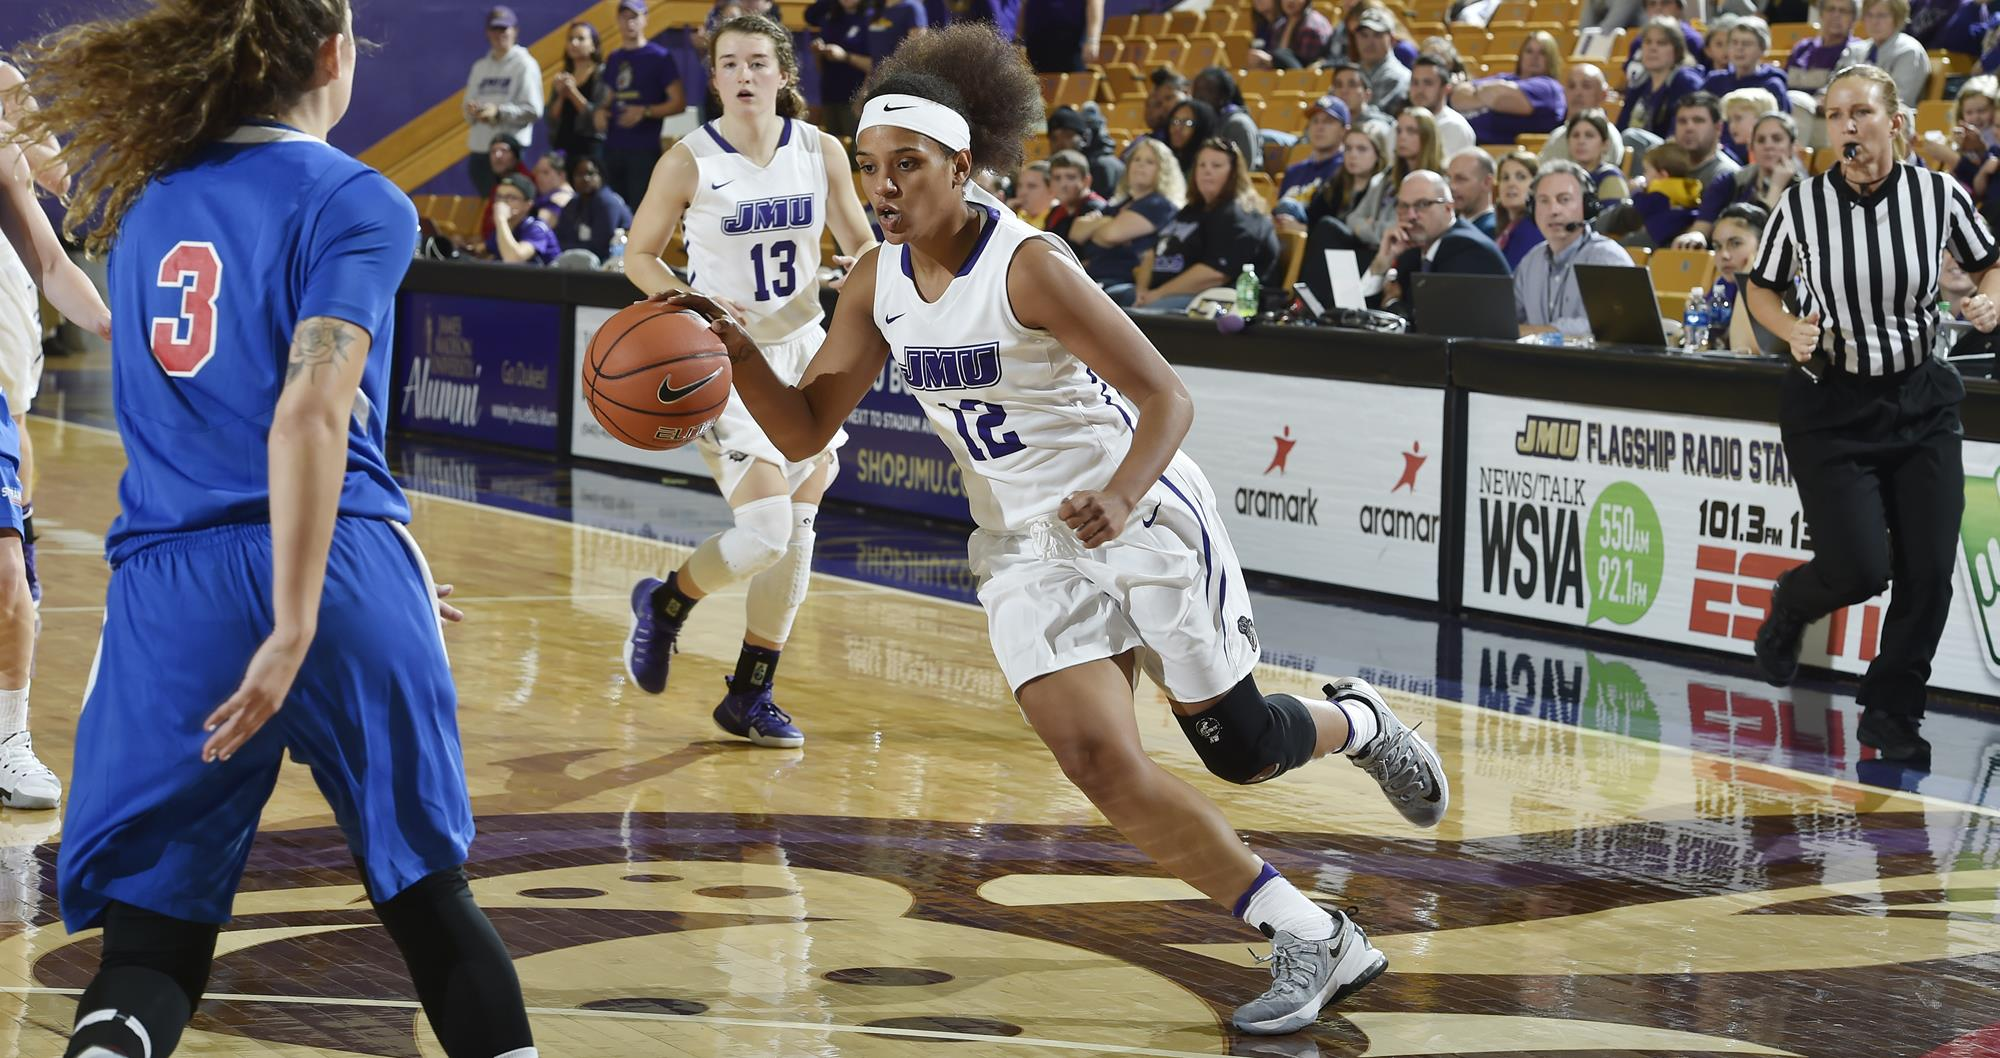 Women's Basketball: Dukes Battle to 76-70 Win at Elon Behind Hall's 41 Points